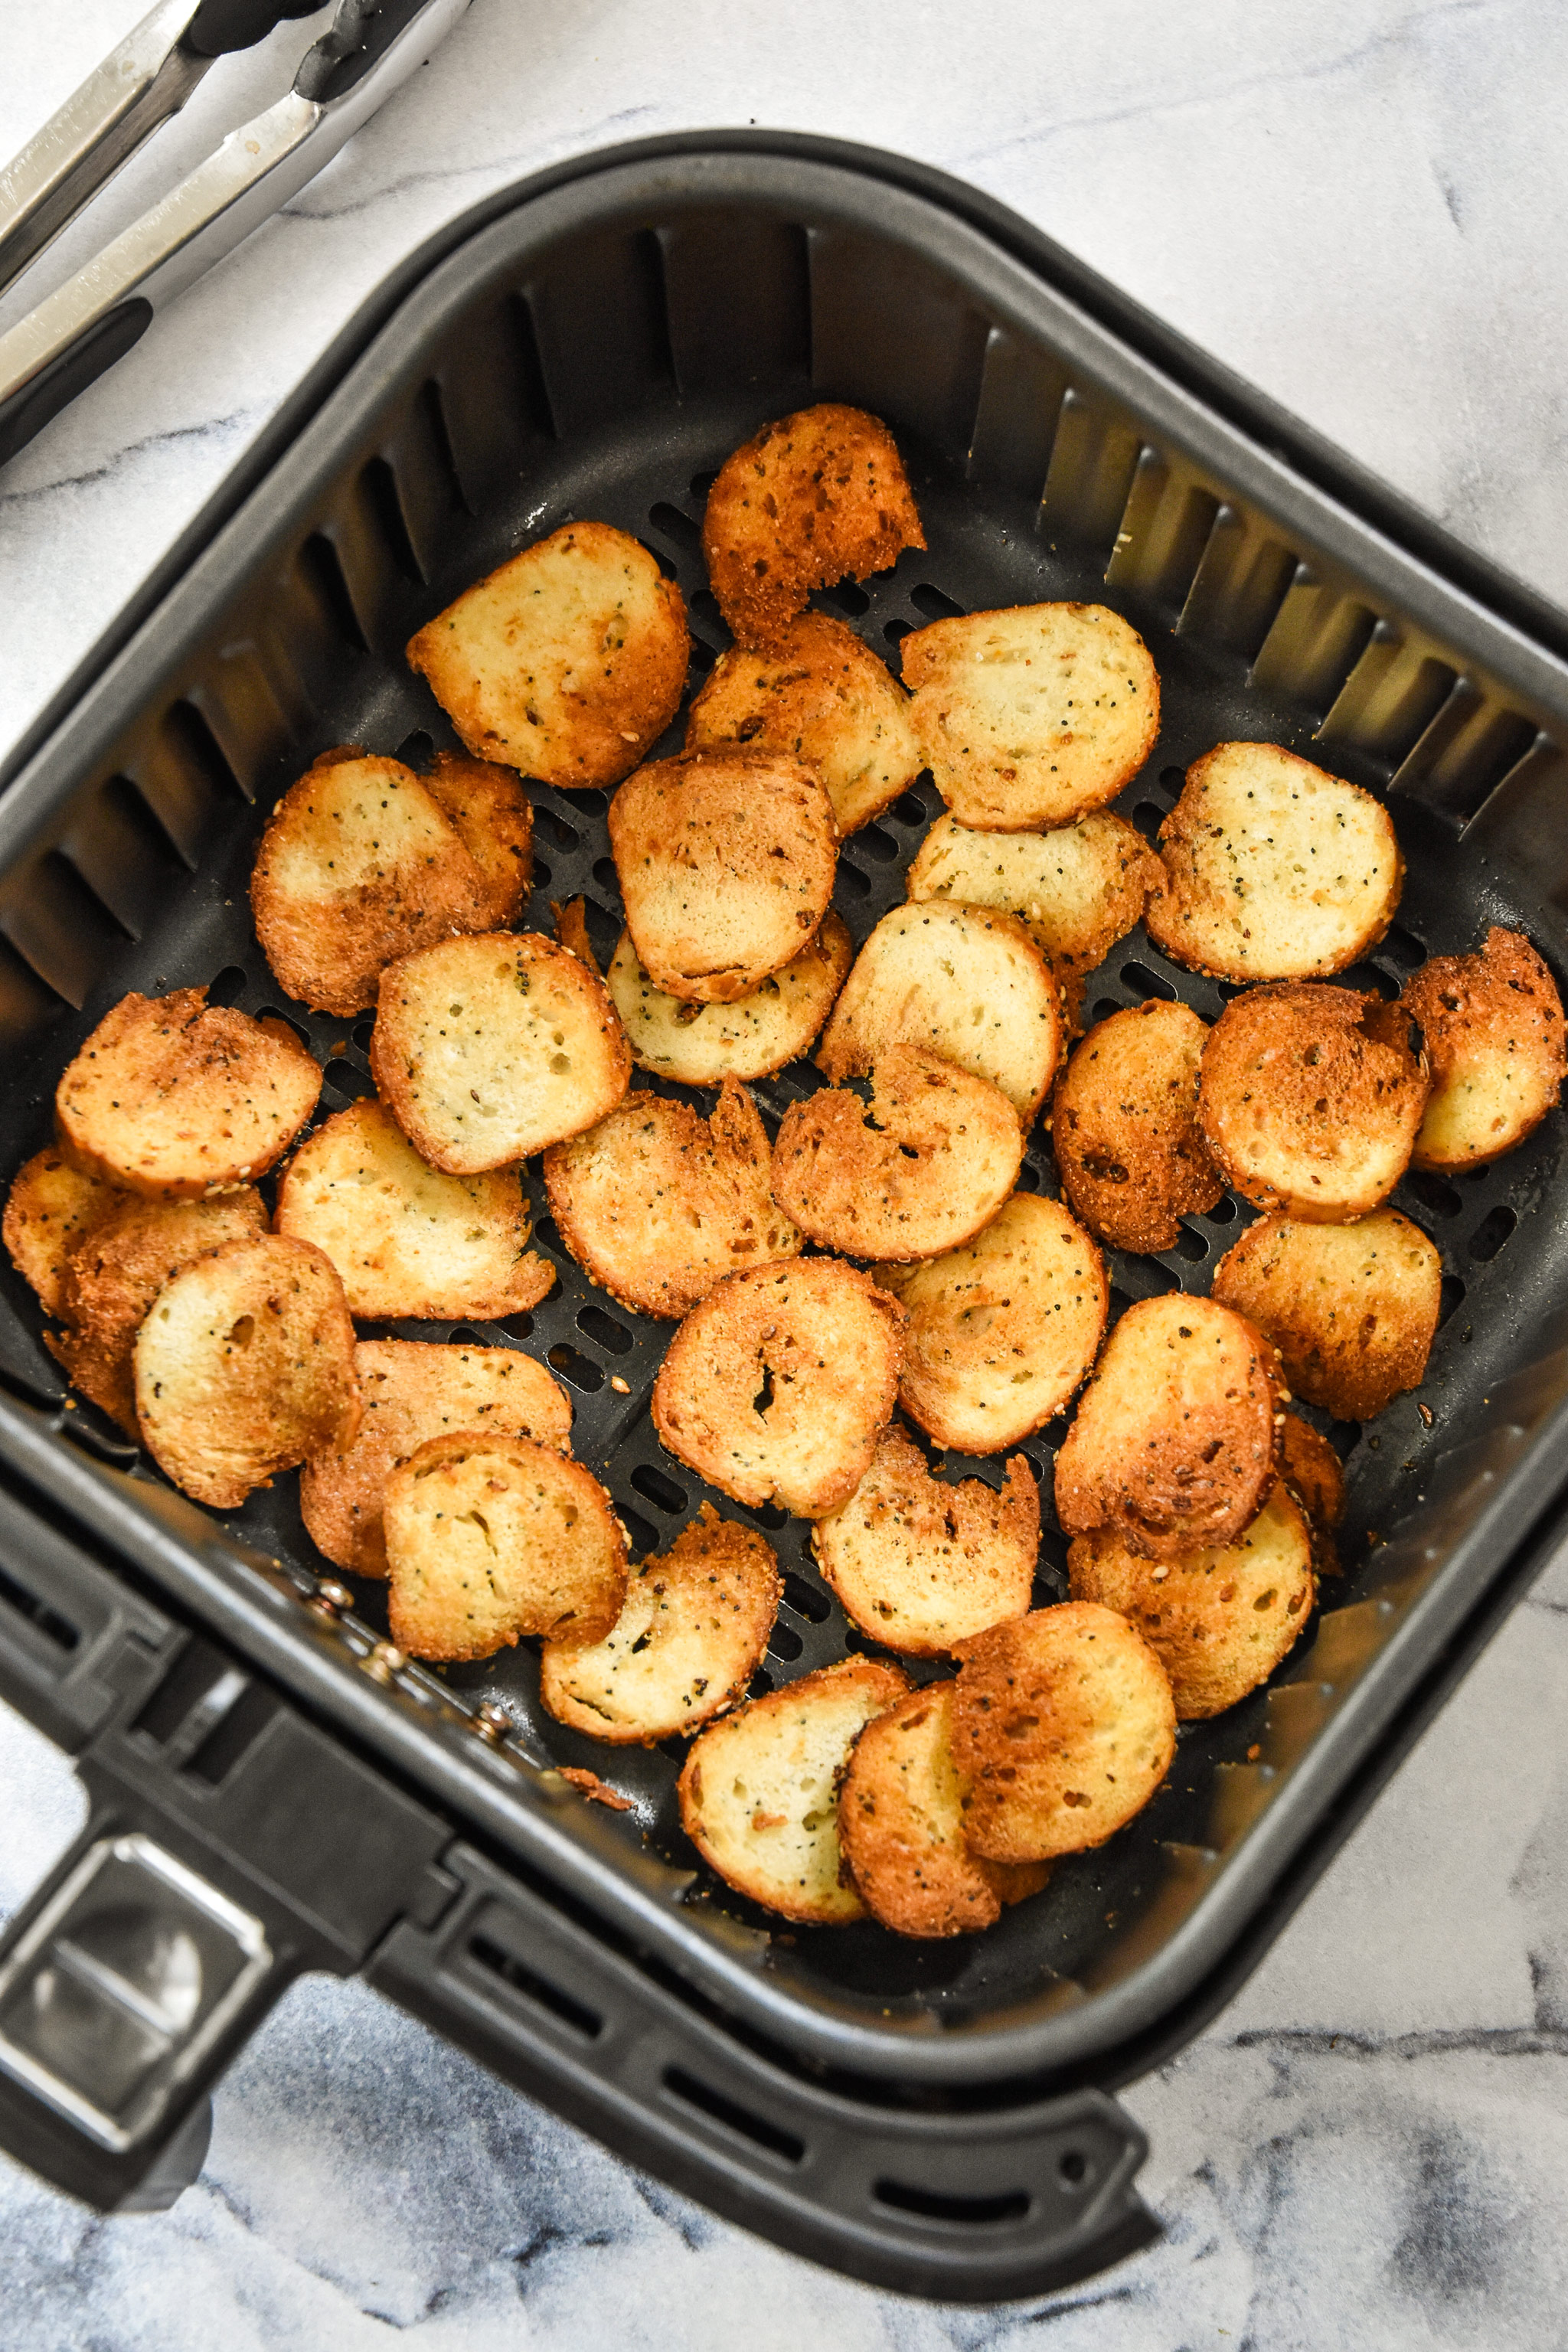 cooked bagel chips in the air fryer basket.